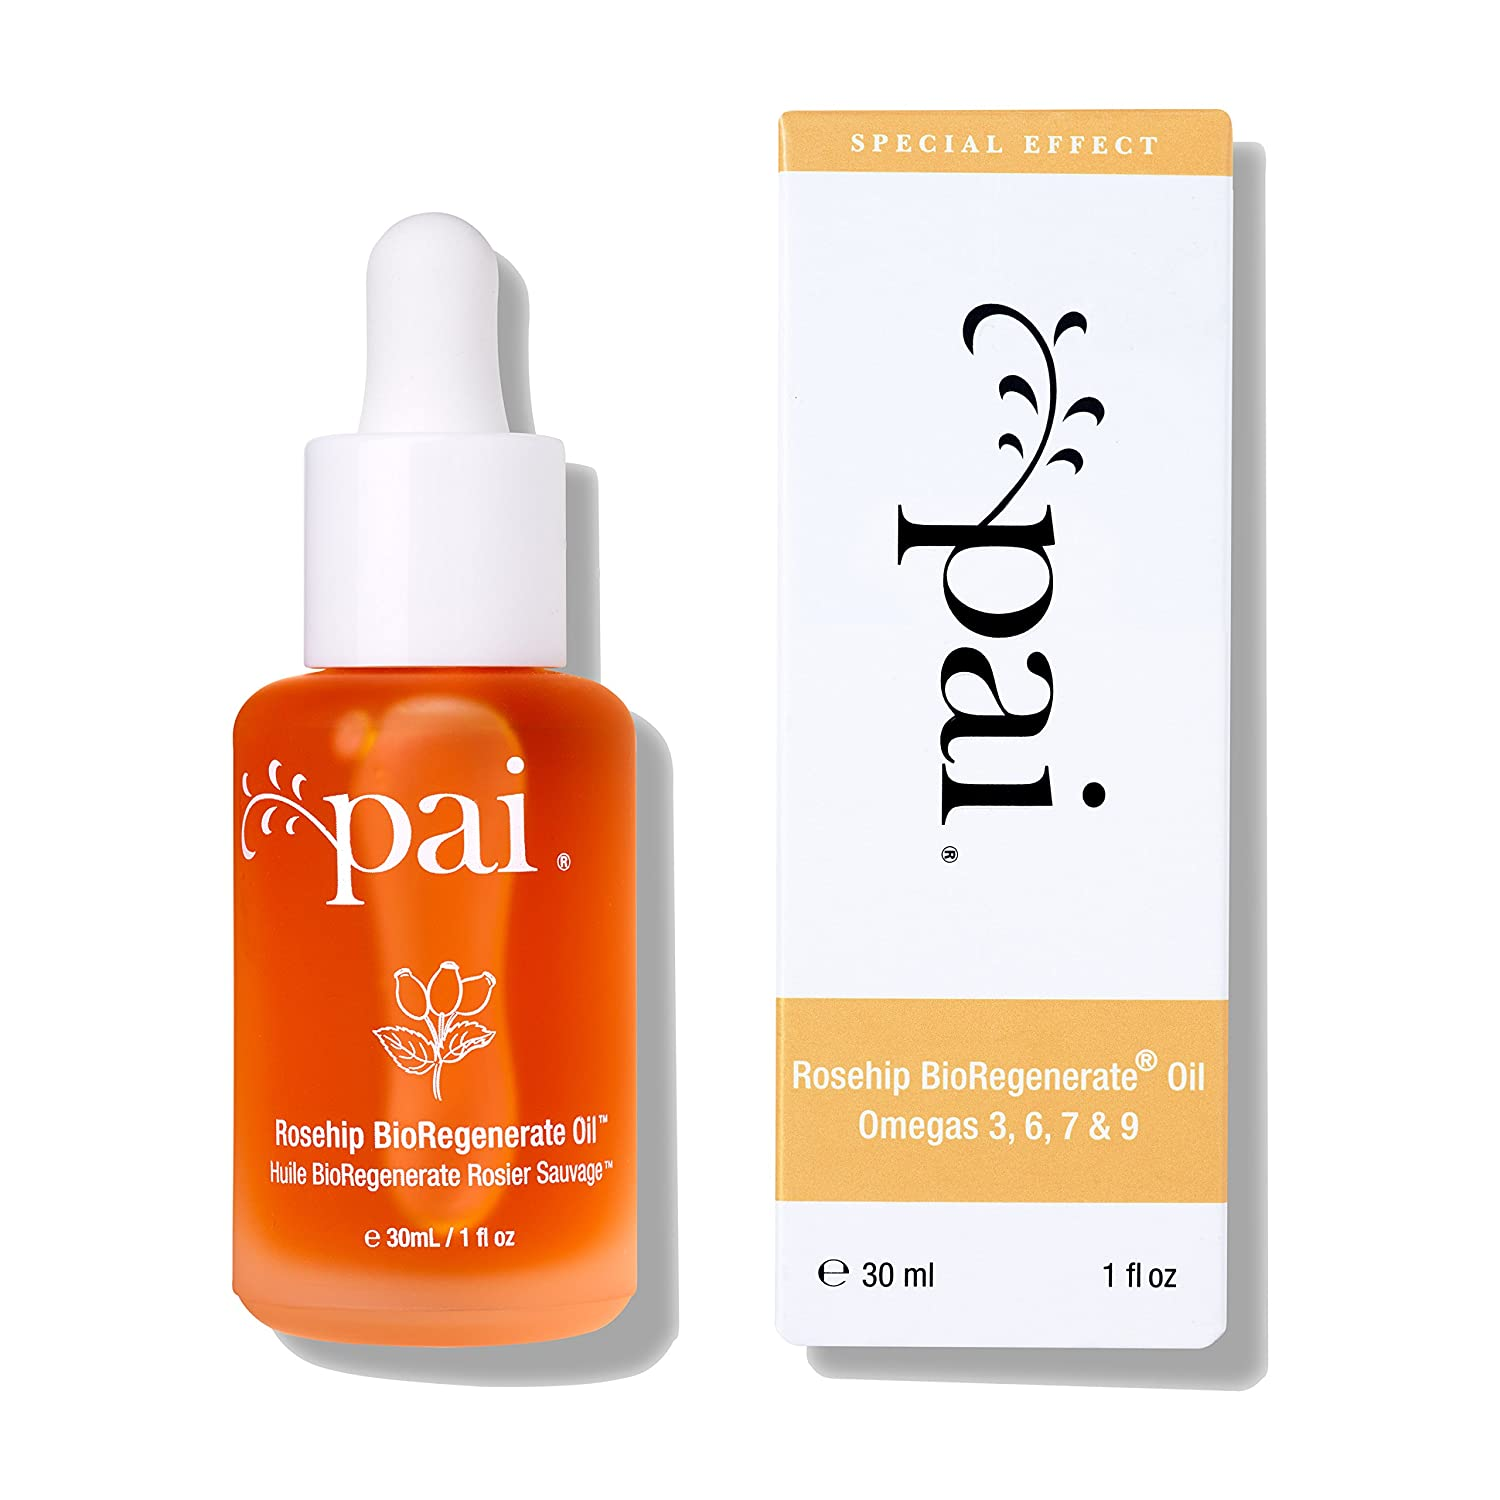 Organic Rosehip BioRegenerate Oil from Pai Skincare